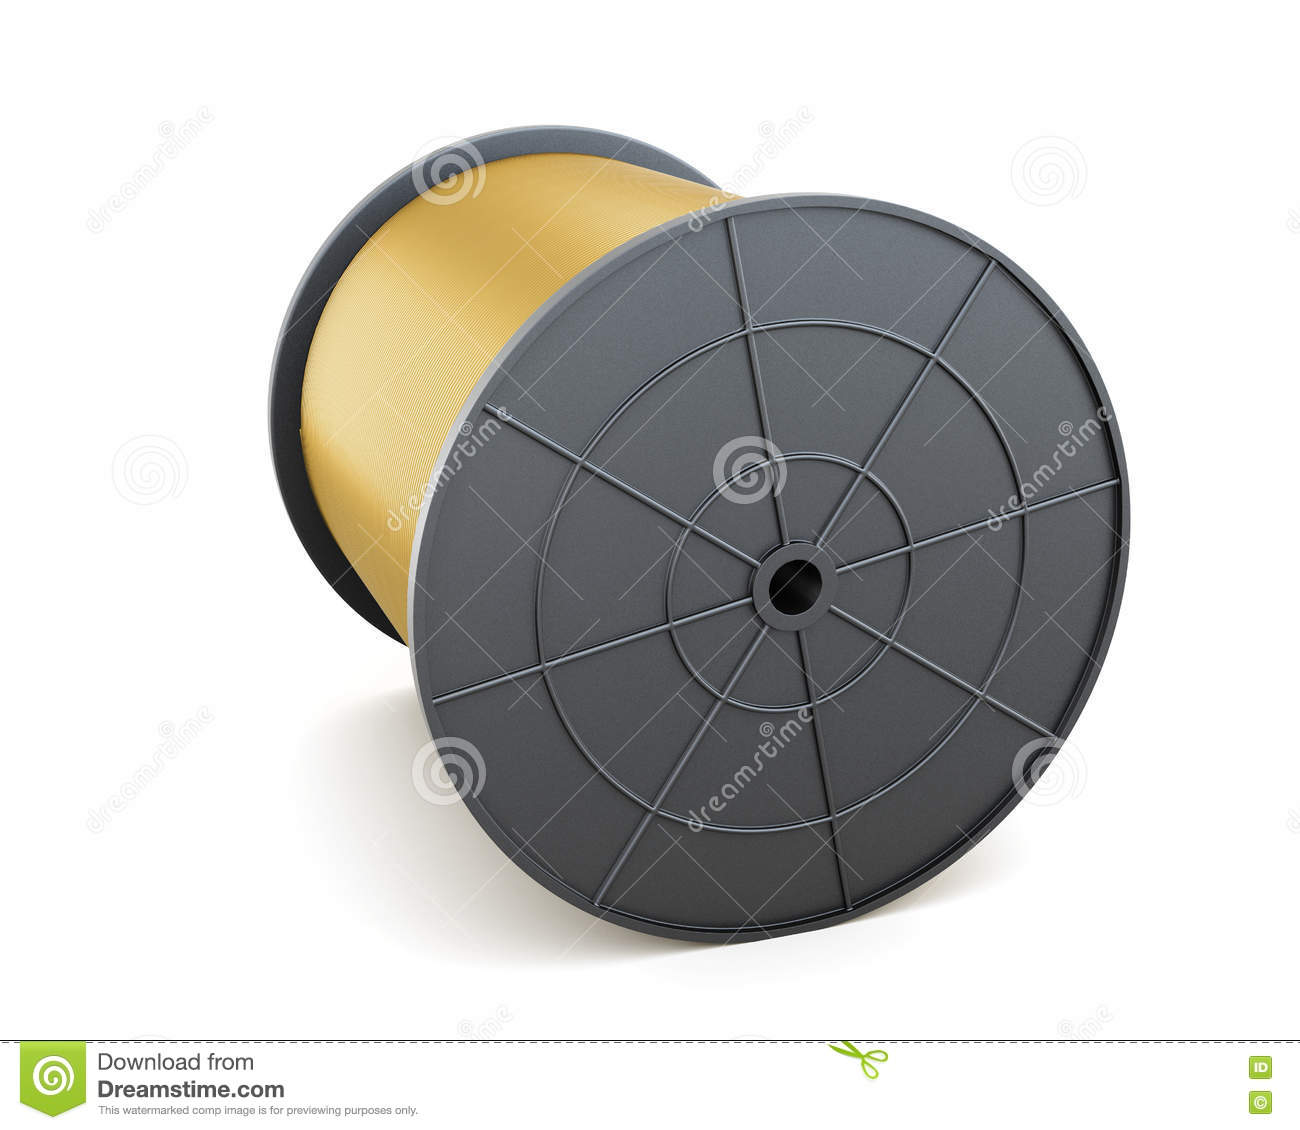 Cable Spool Stock Illustrations – 224 Cable Spool Stock ...